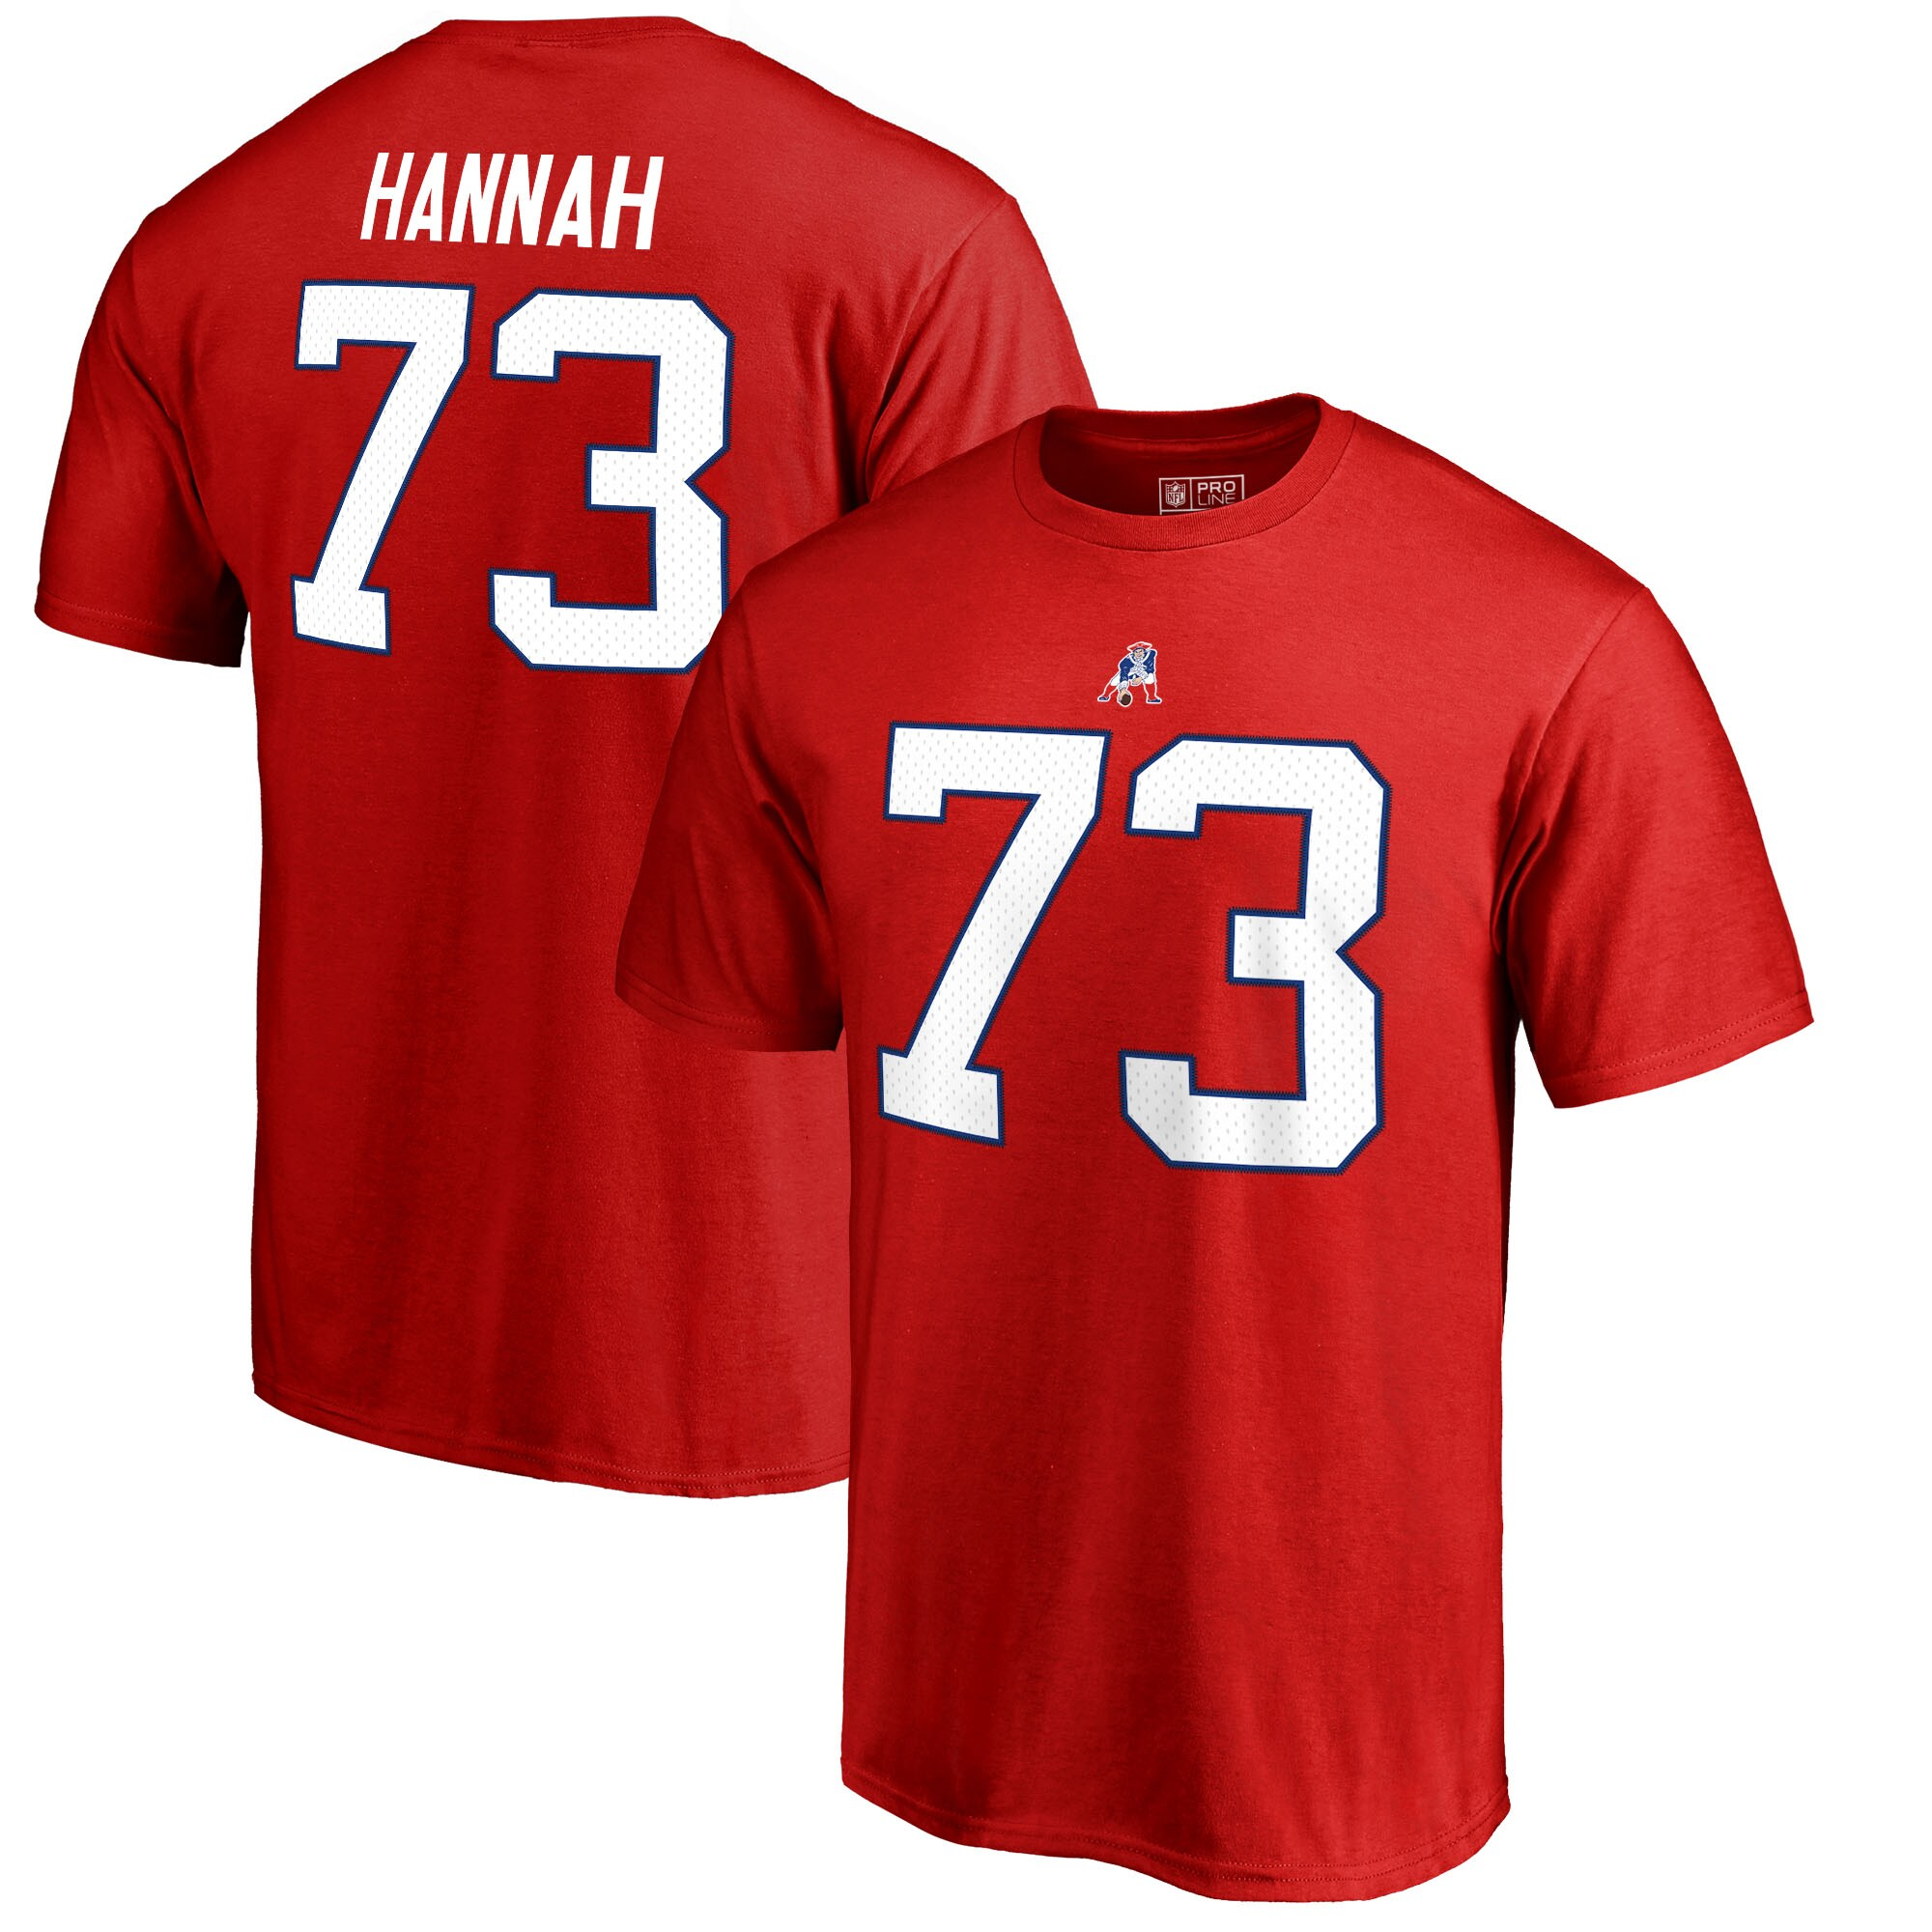 John Hannah New England Patriots NFL Pro Line by Fanatics Branded Retired Player Authentic Stack Name & Number T-Shirt - Red